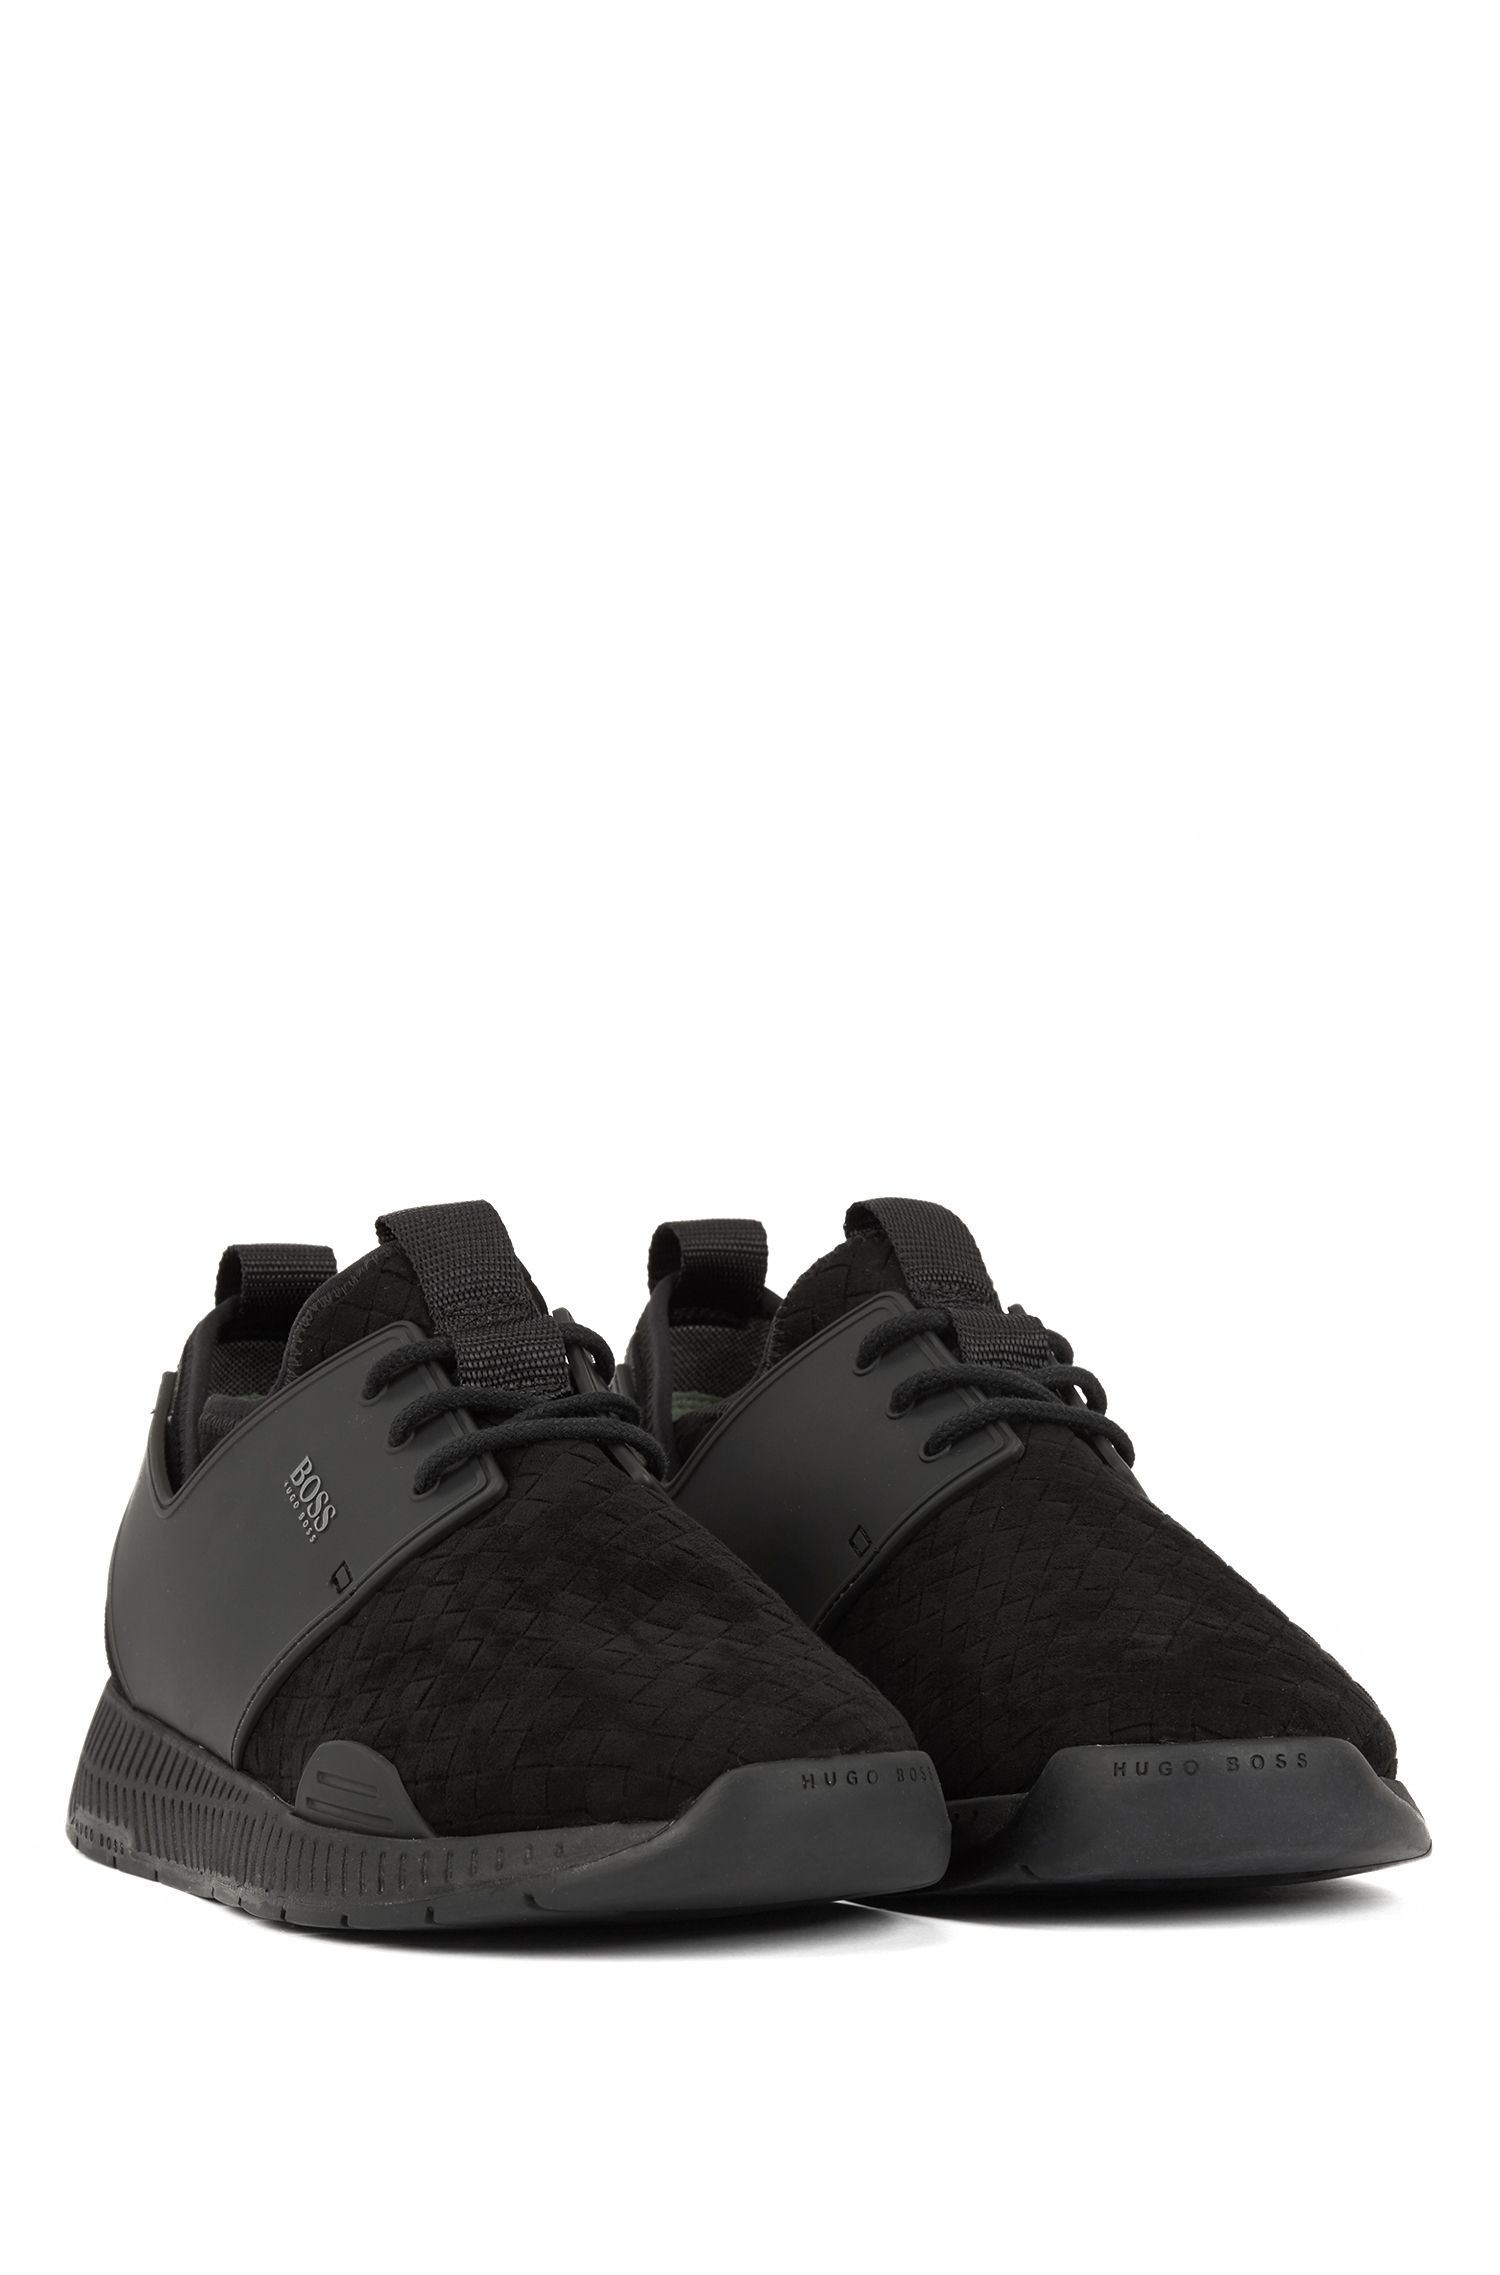 Running-style hybrid sneakers with EVA and rubber sole, Black